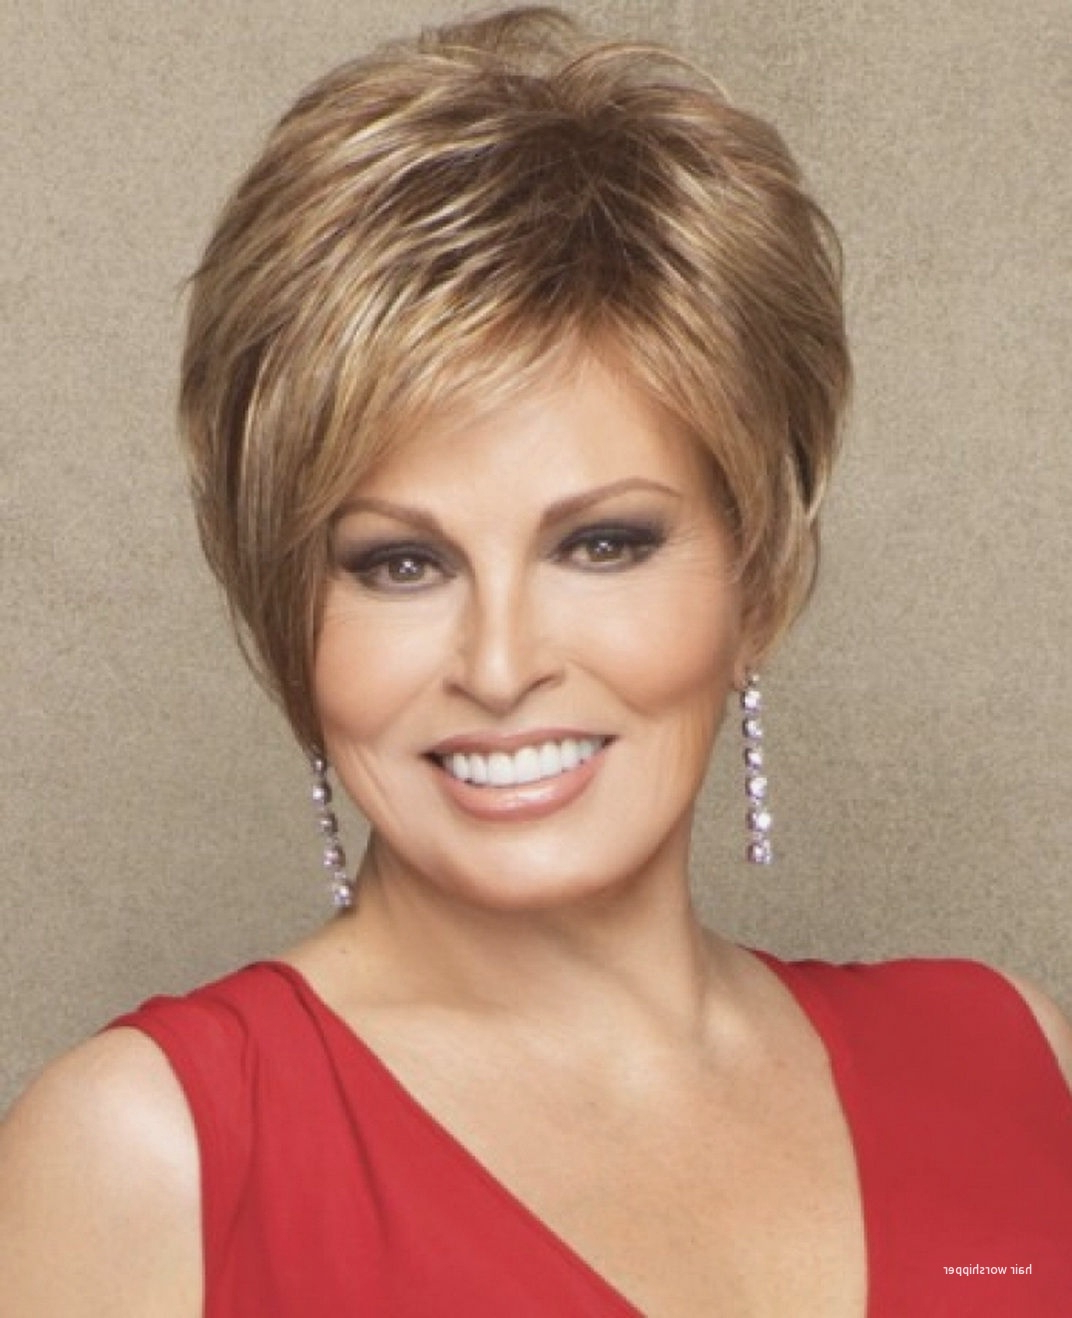 Short Hair For 50 Years Luxury Short Hairstyles For 50 Year Old Intended For Short Hairstyles For 50 Year Old Woman (View 13 of 25)